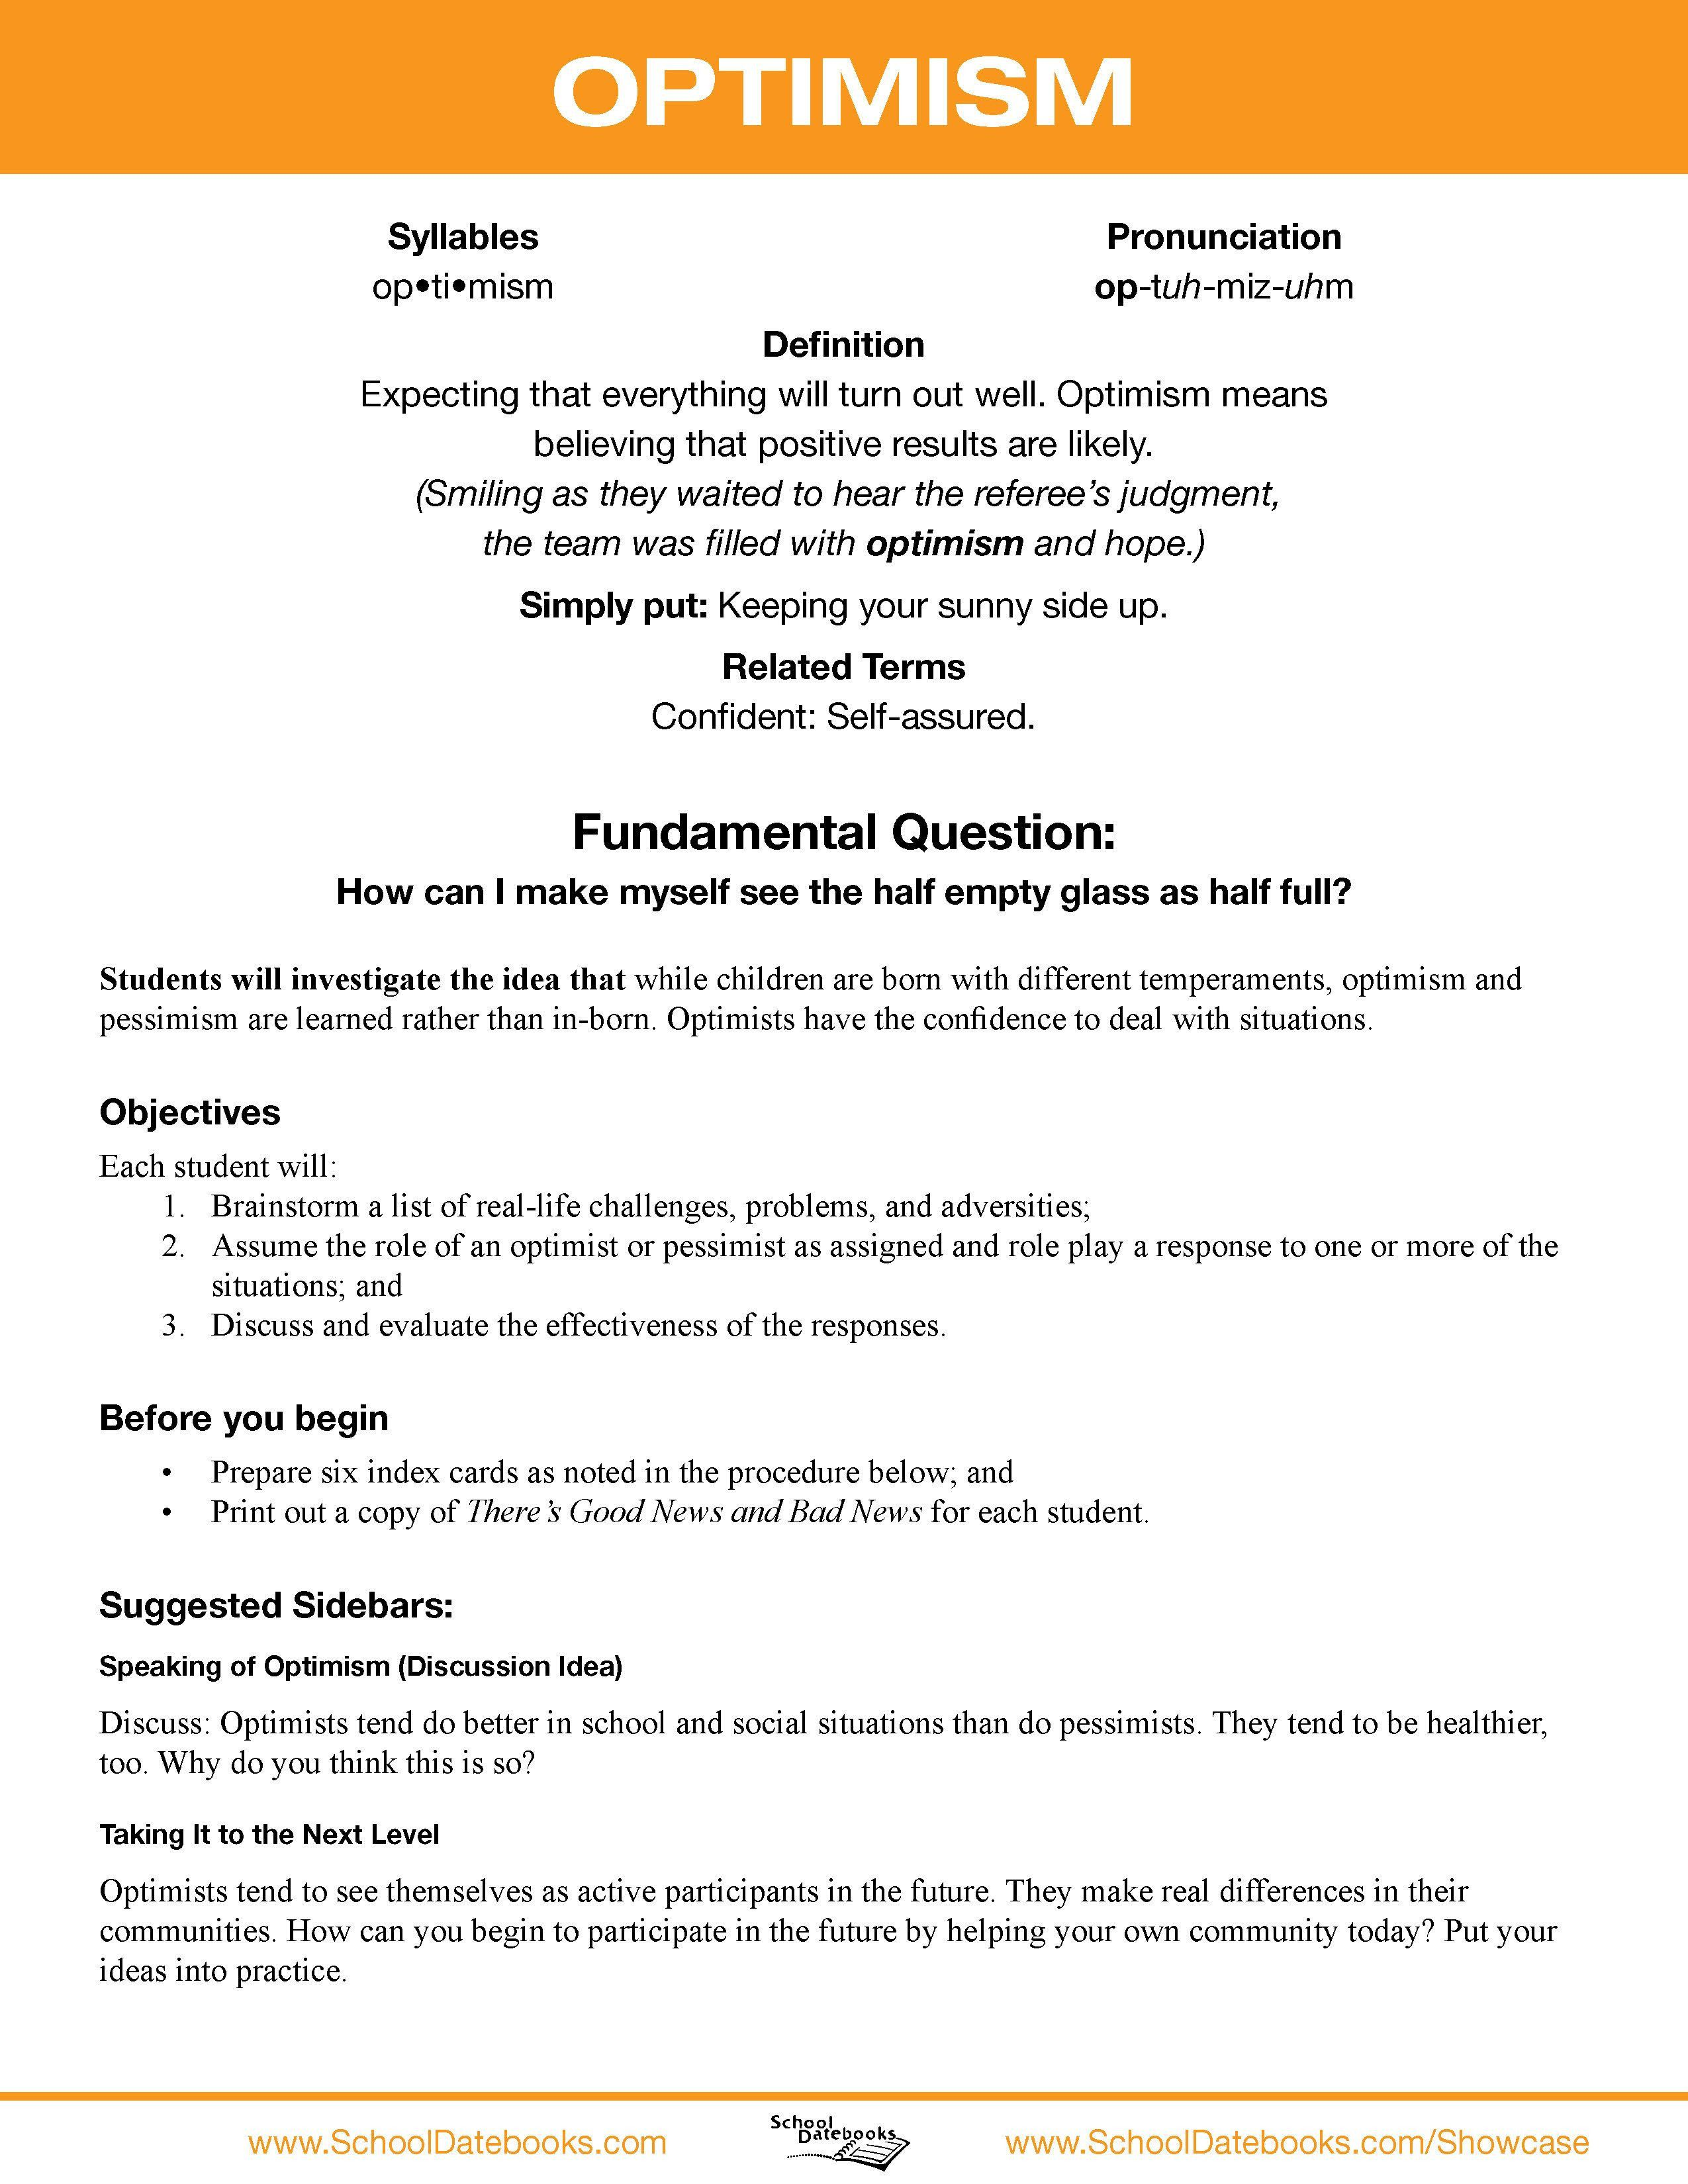 Optimism Character Lesson Plan Free Able 52 Total